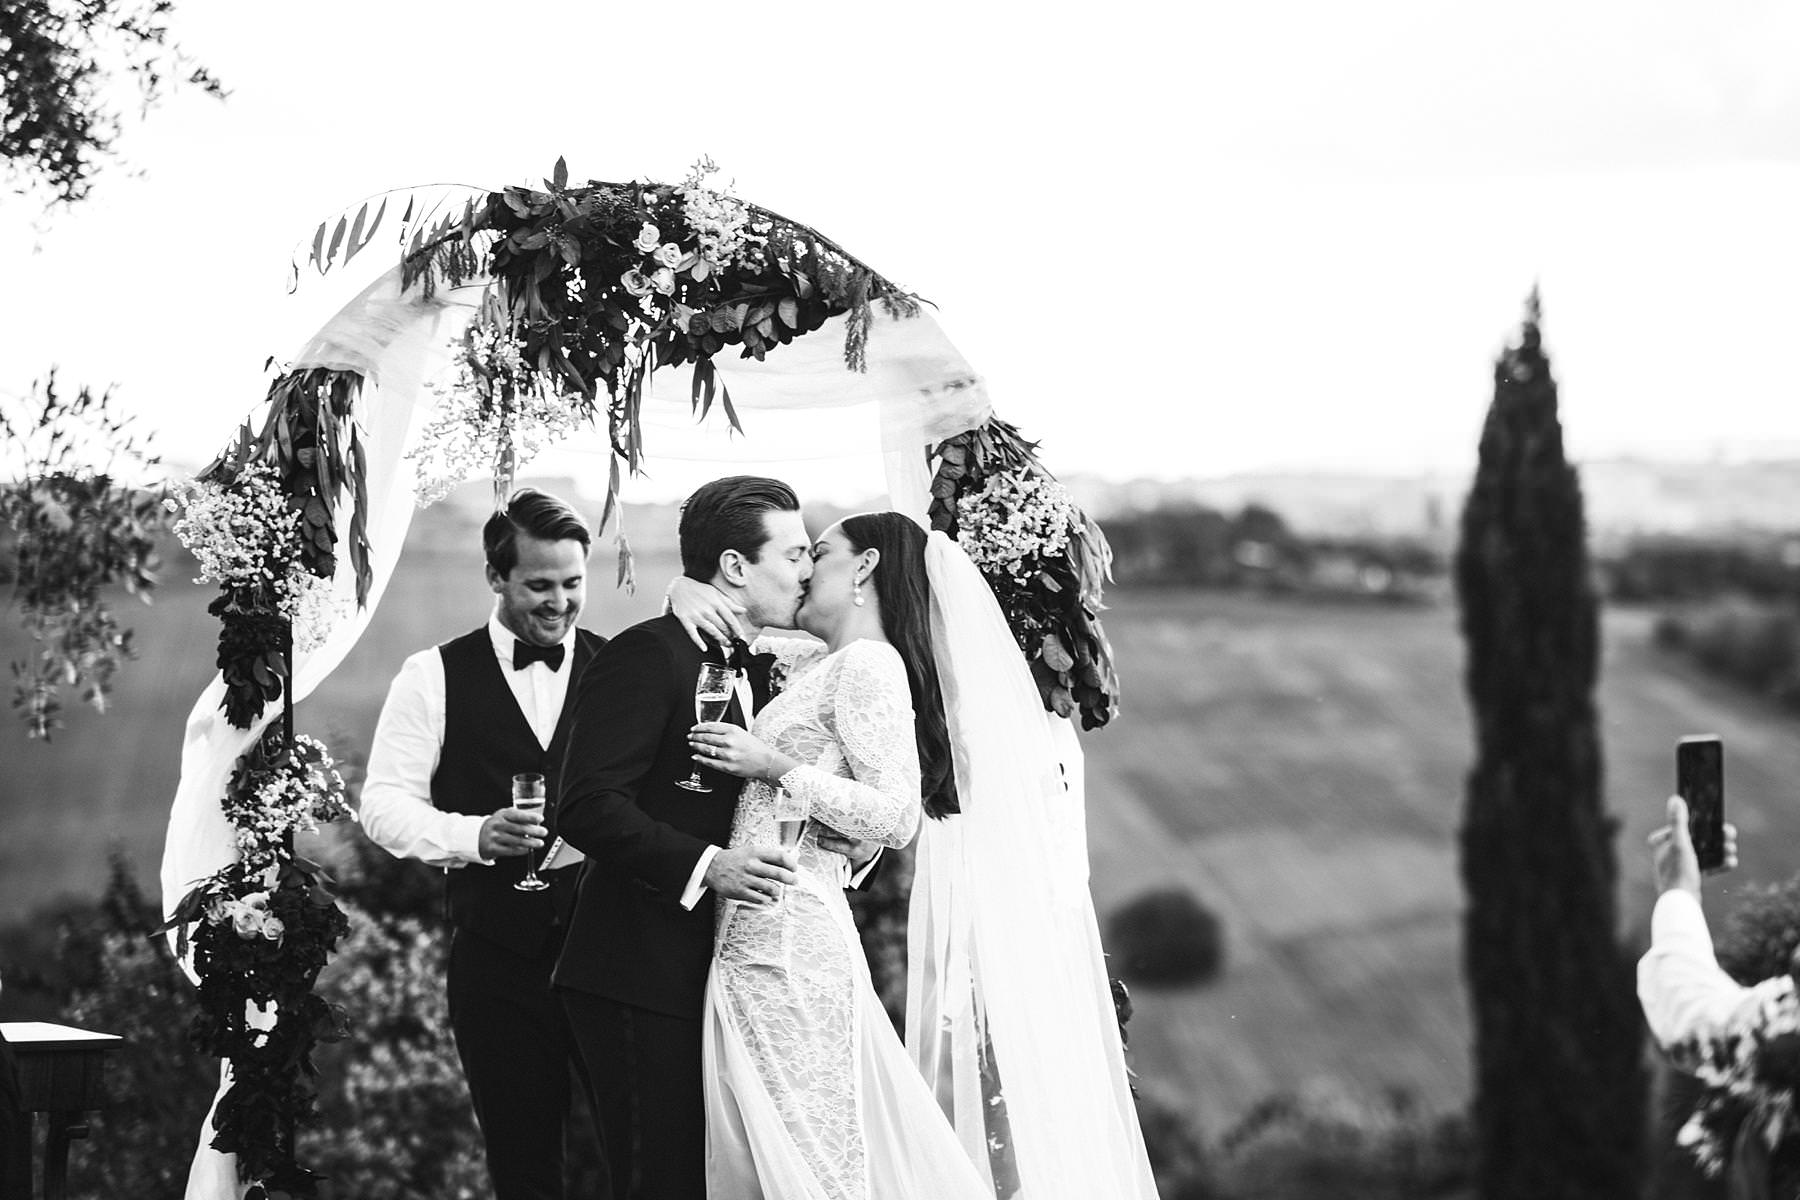 Elegant and reportage wedding photography in Umbria countryside at Villa lÕAntica Posta venue. Outdoor intimate ceremony with a countryside view